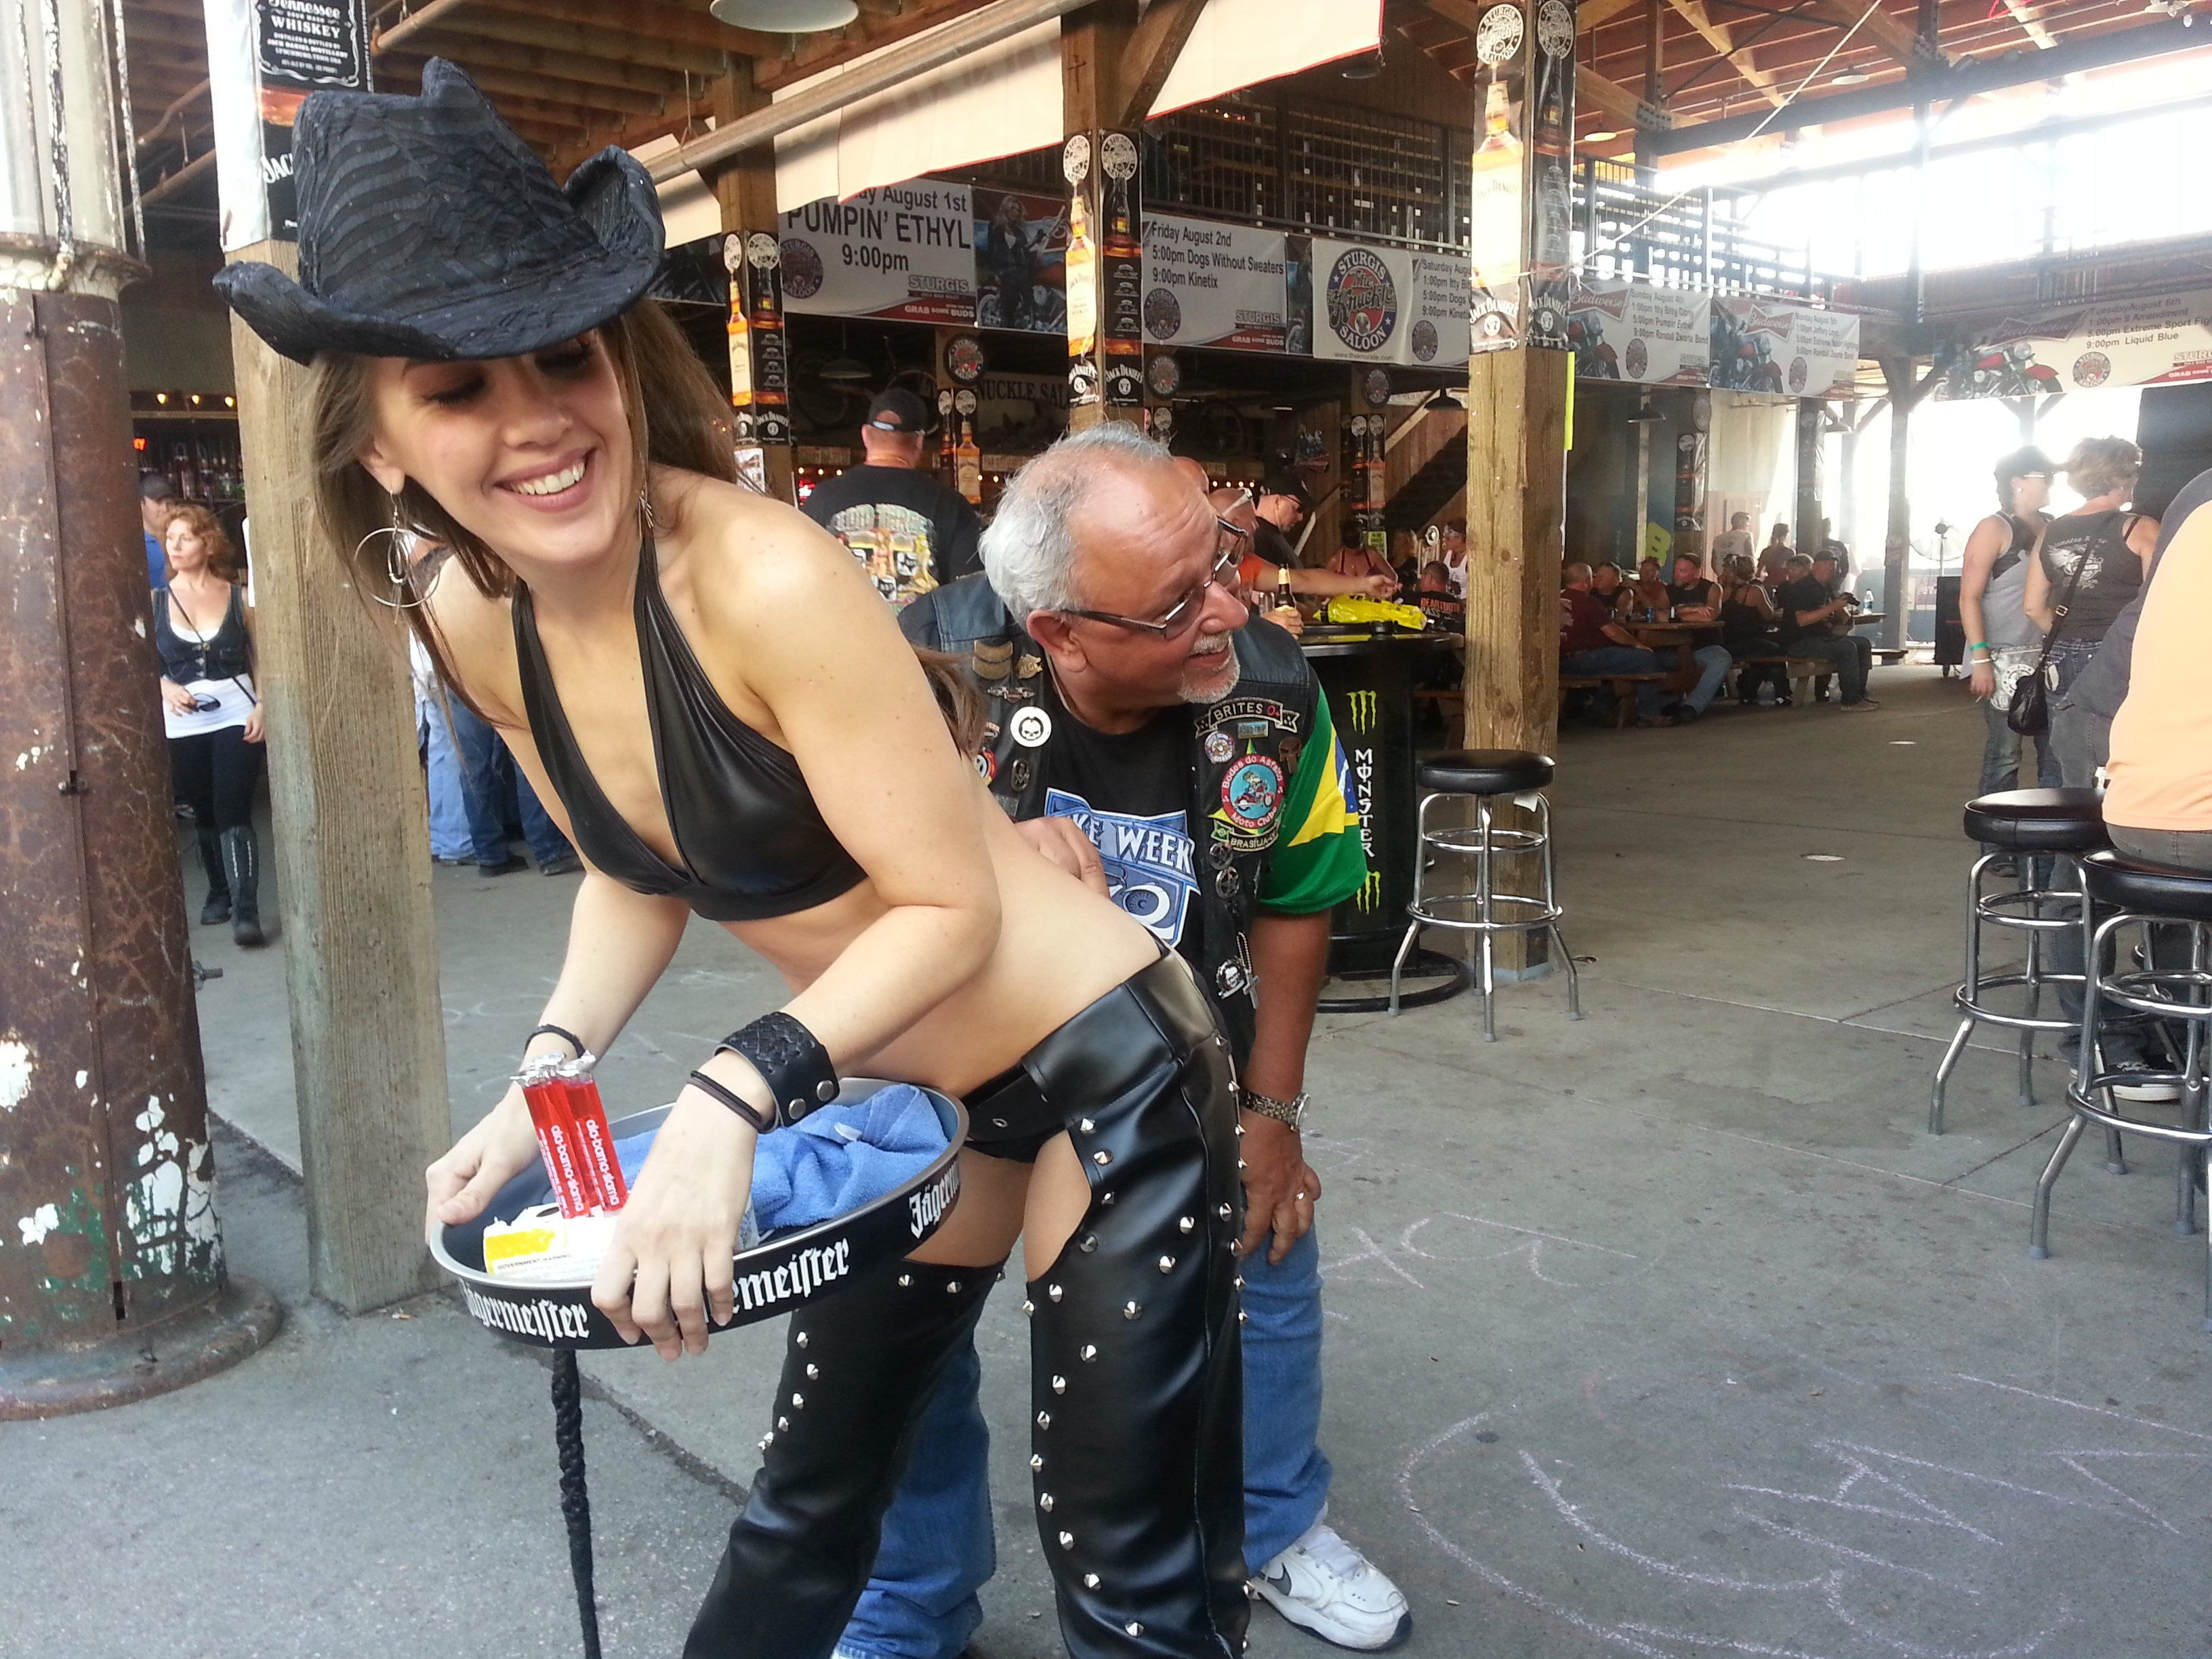 Leather reccomend Sexiest girls at sturgis